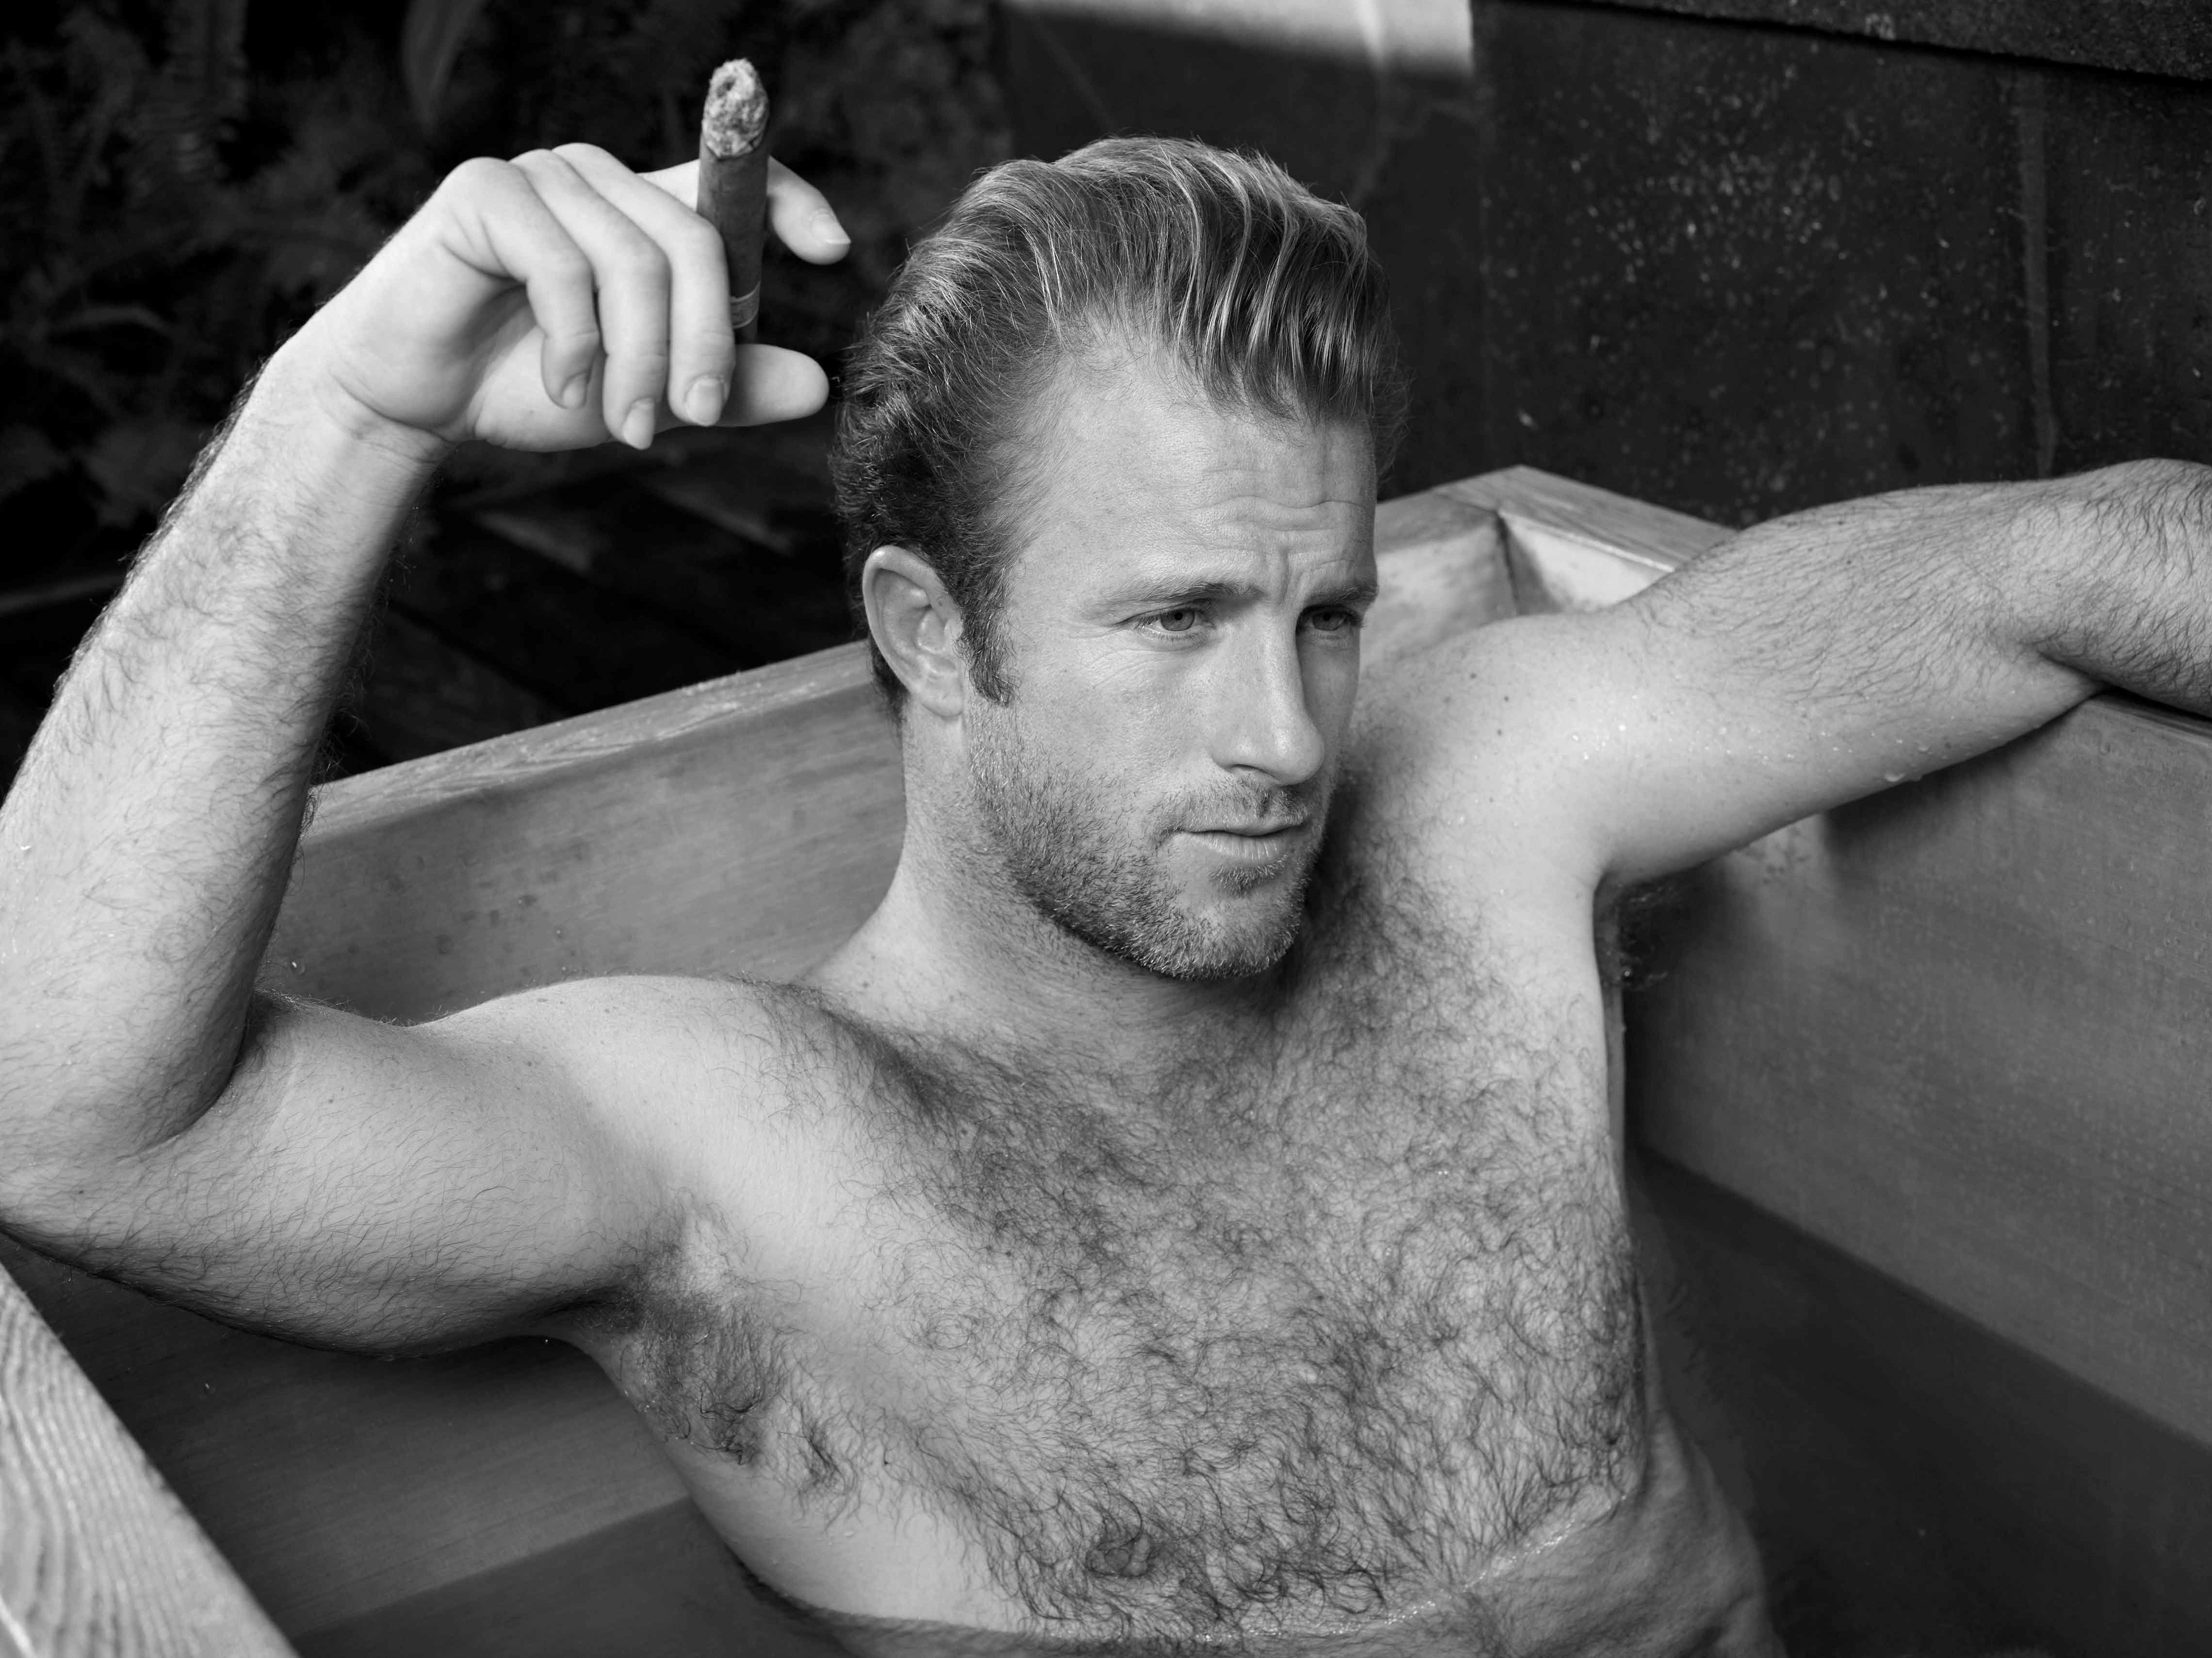 Black and white photo of Scott Caan smoking a cigar in a hot tub.